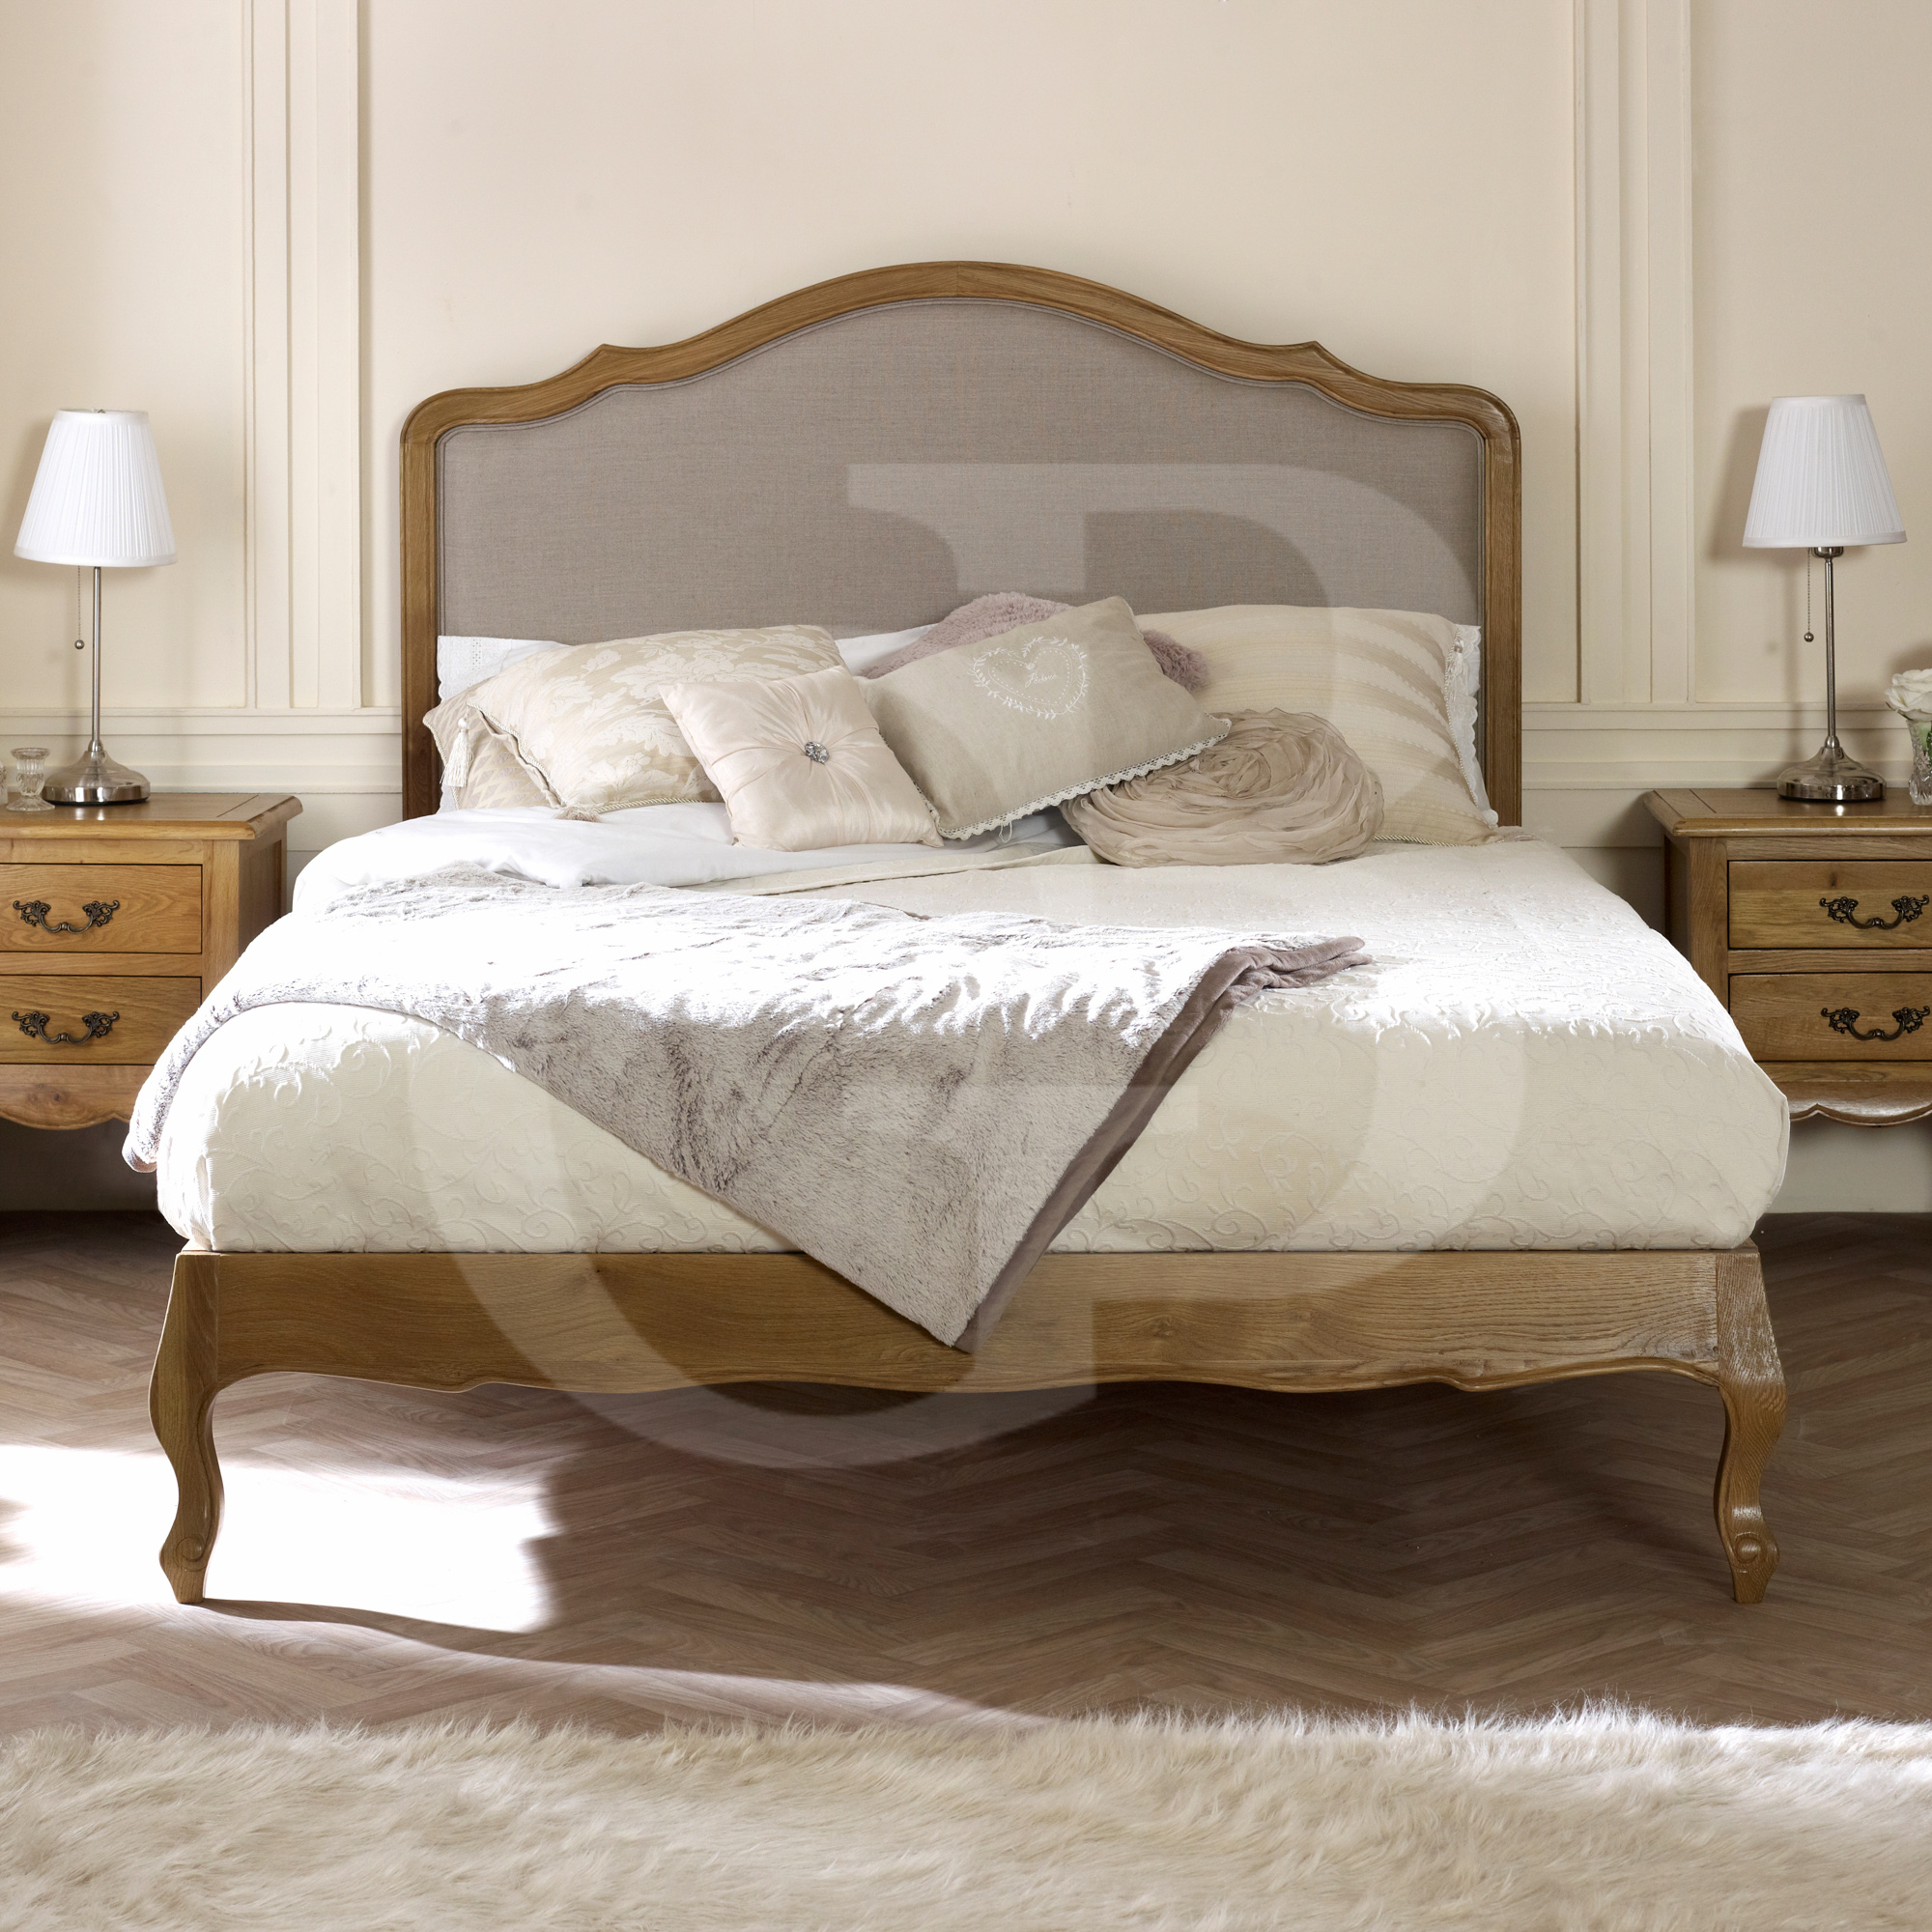 Egb50 French Solid Oak Linen Upholstered Bed In Double